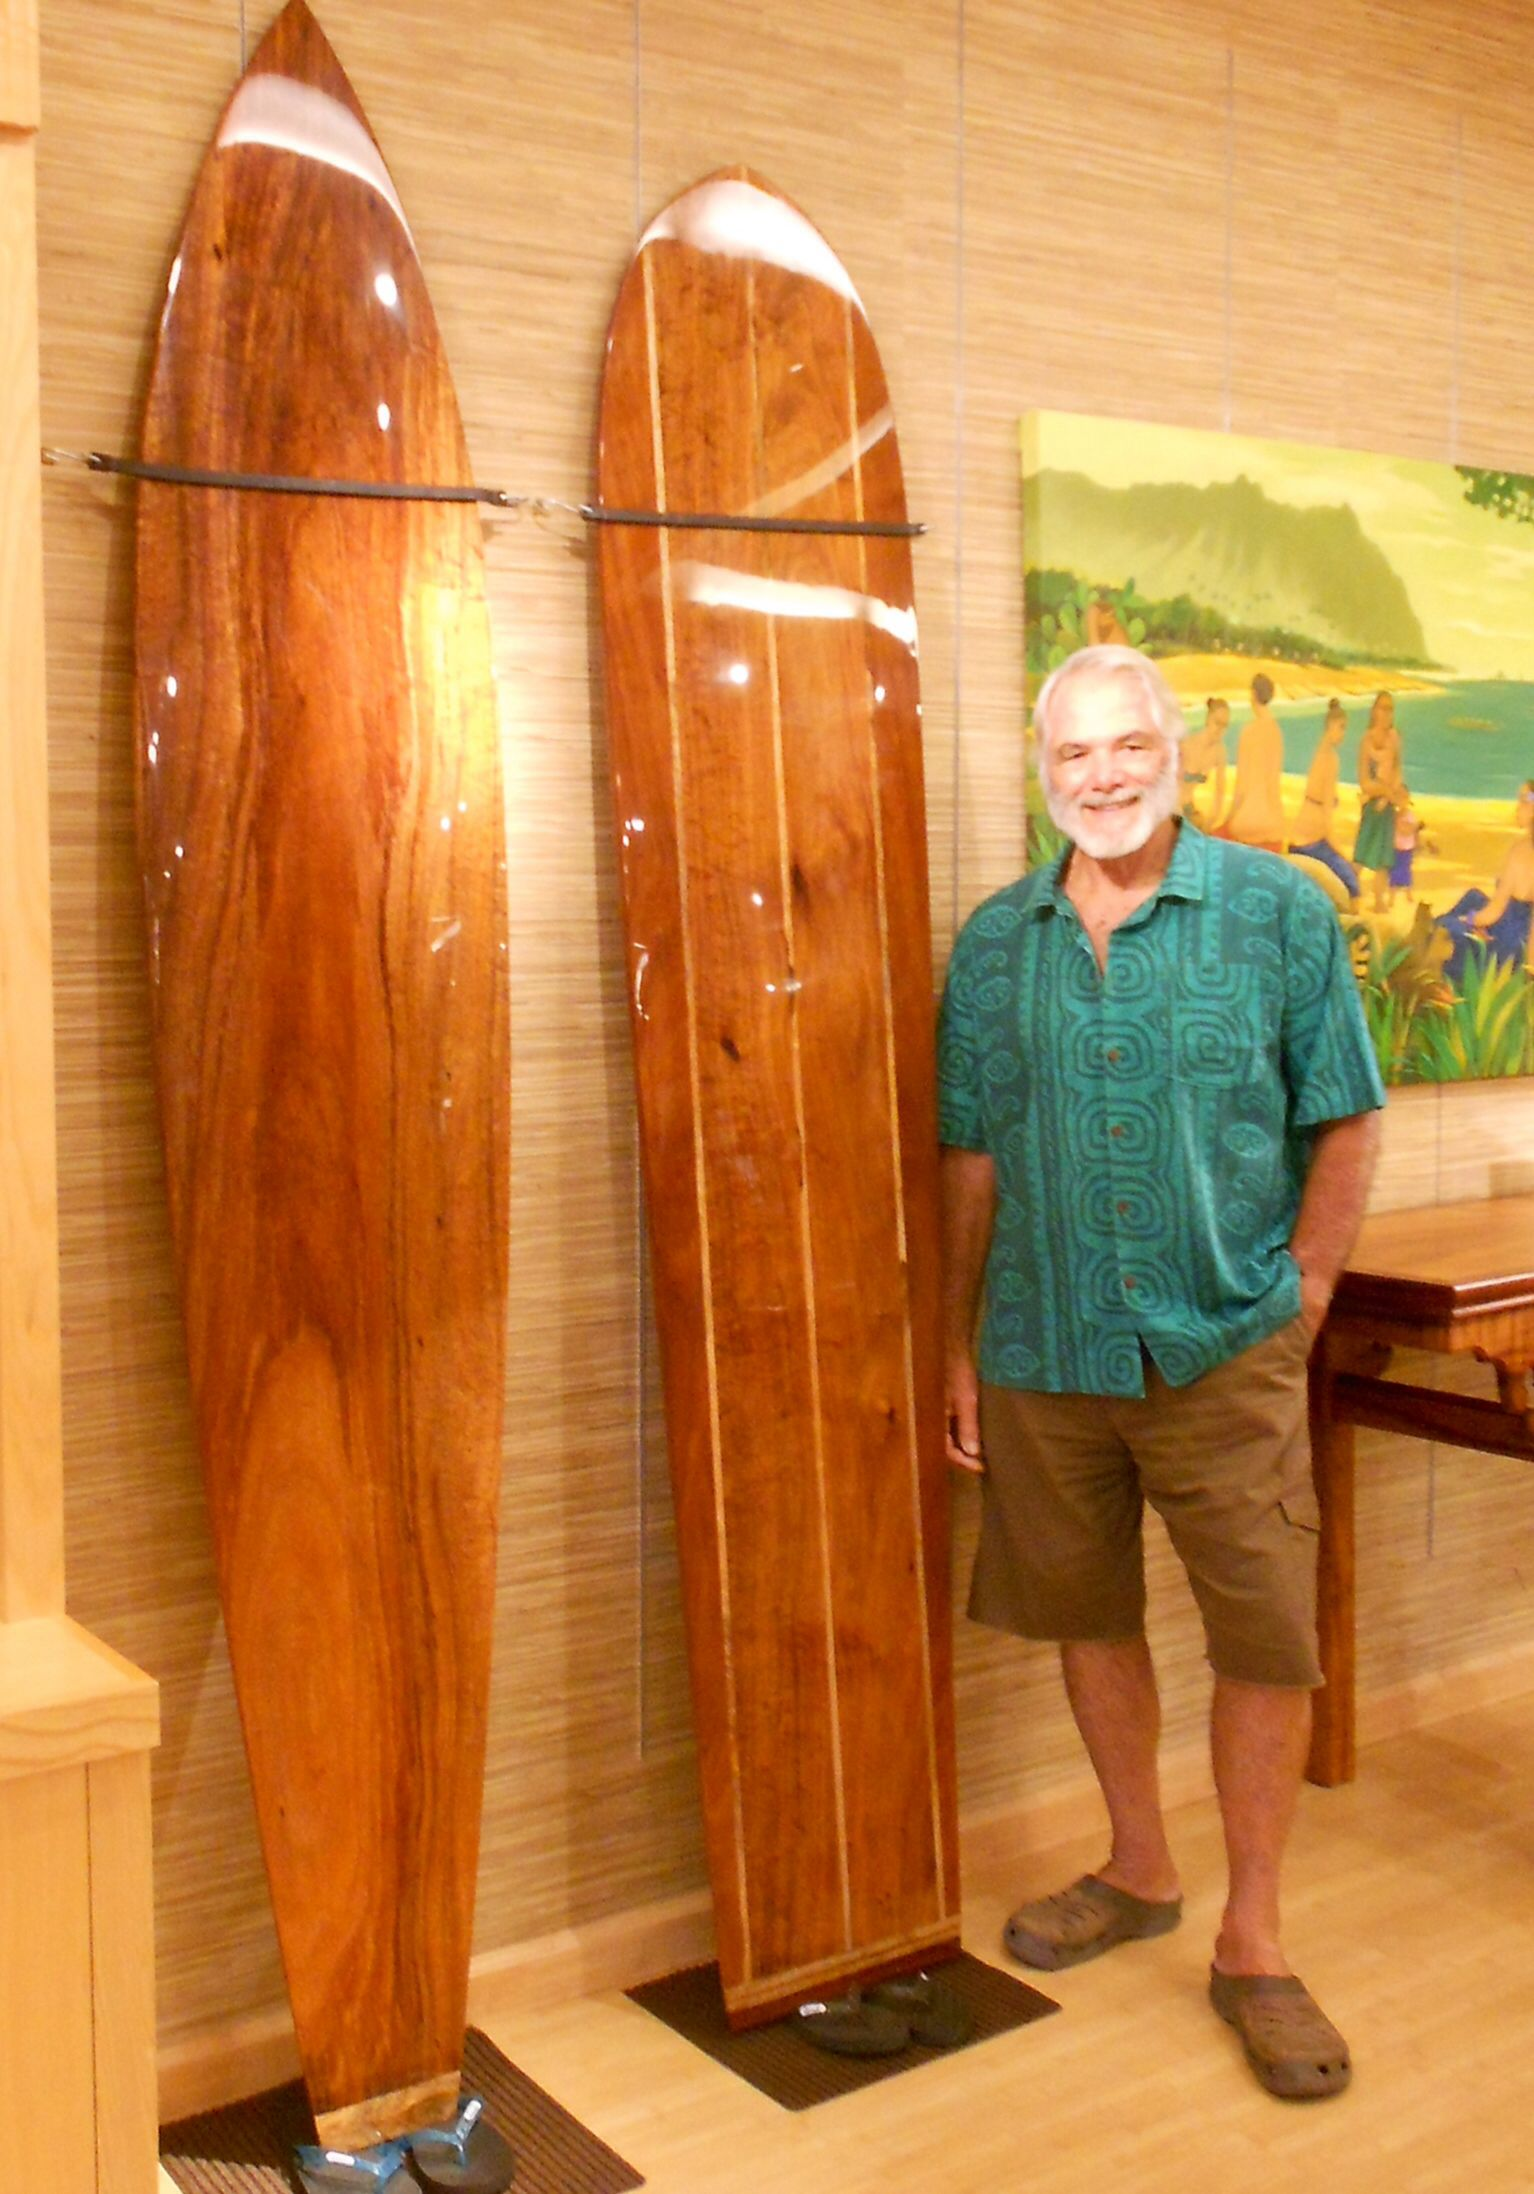 Koa Surfboards by master shaper Kenny Tilton.  Only at our Kings' Shops Waikoloa store 808-886-0696 www.martinandmacarthur.com